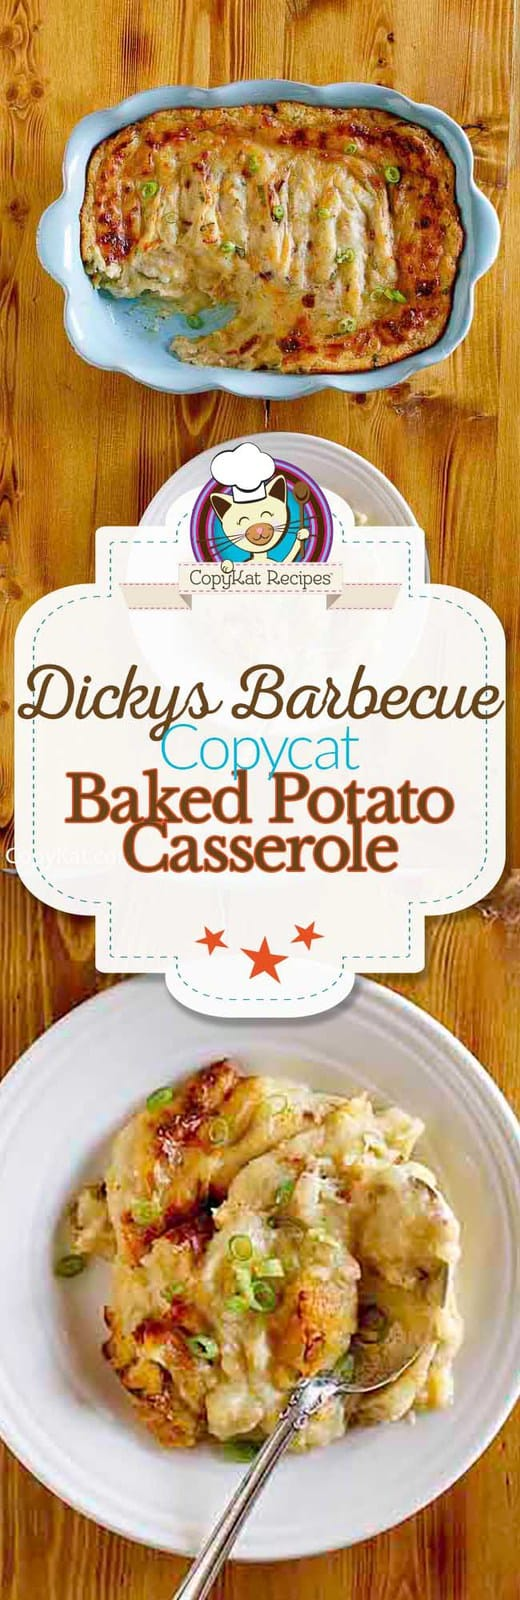 You can recreate Dickey's Barbeque Baked Potato Casserole with this easy recipe.